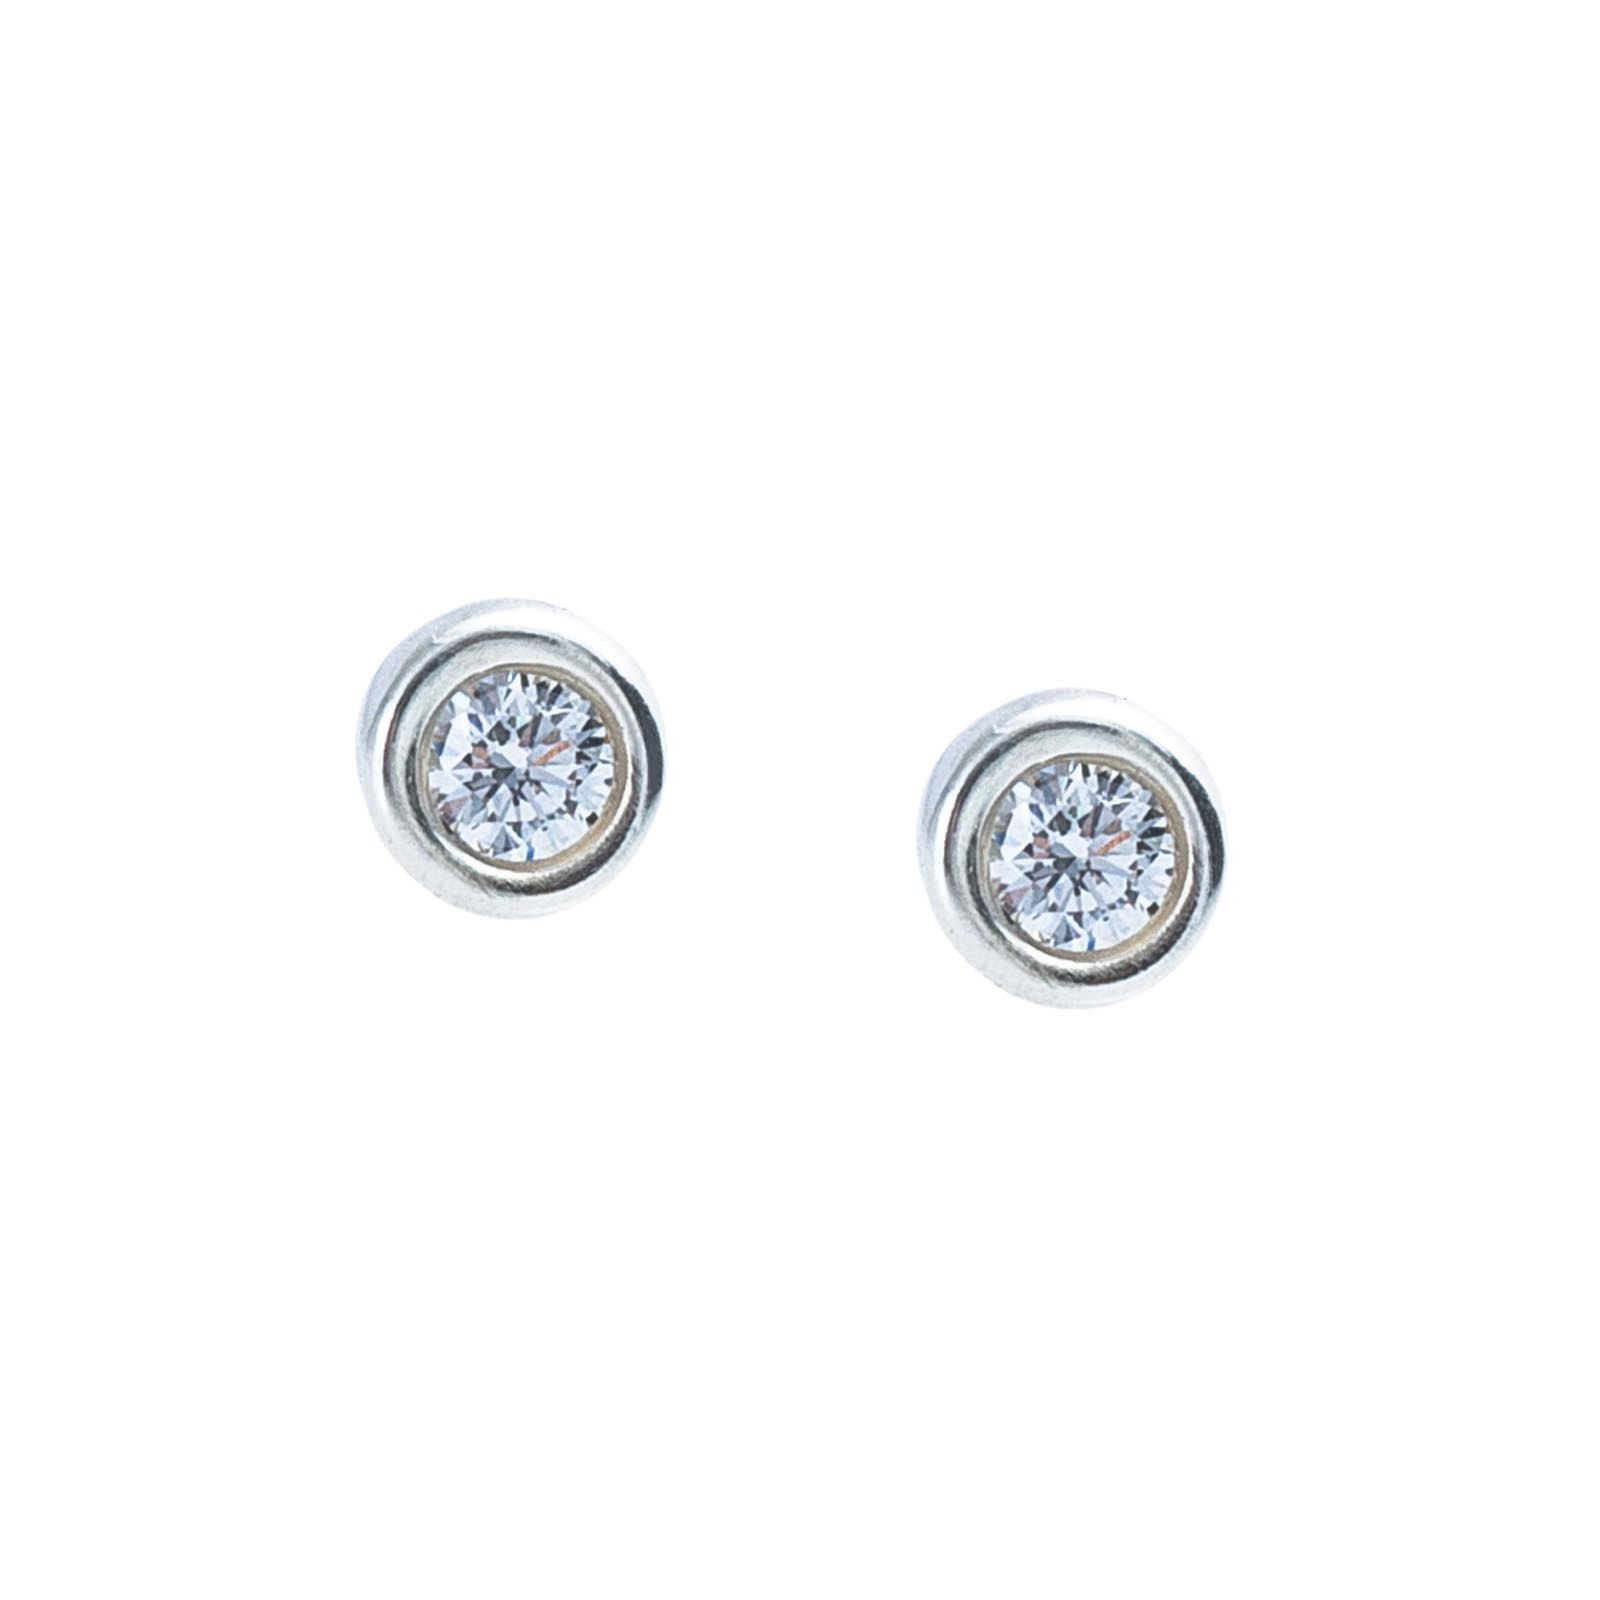 f1546ce8f More Views. Vintage Tiffany & Co. Elsa Peretti Diamonds By the Yard Stud  Earrings ...